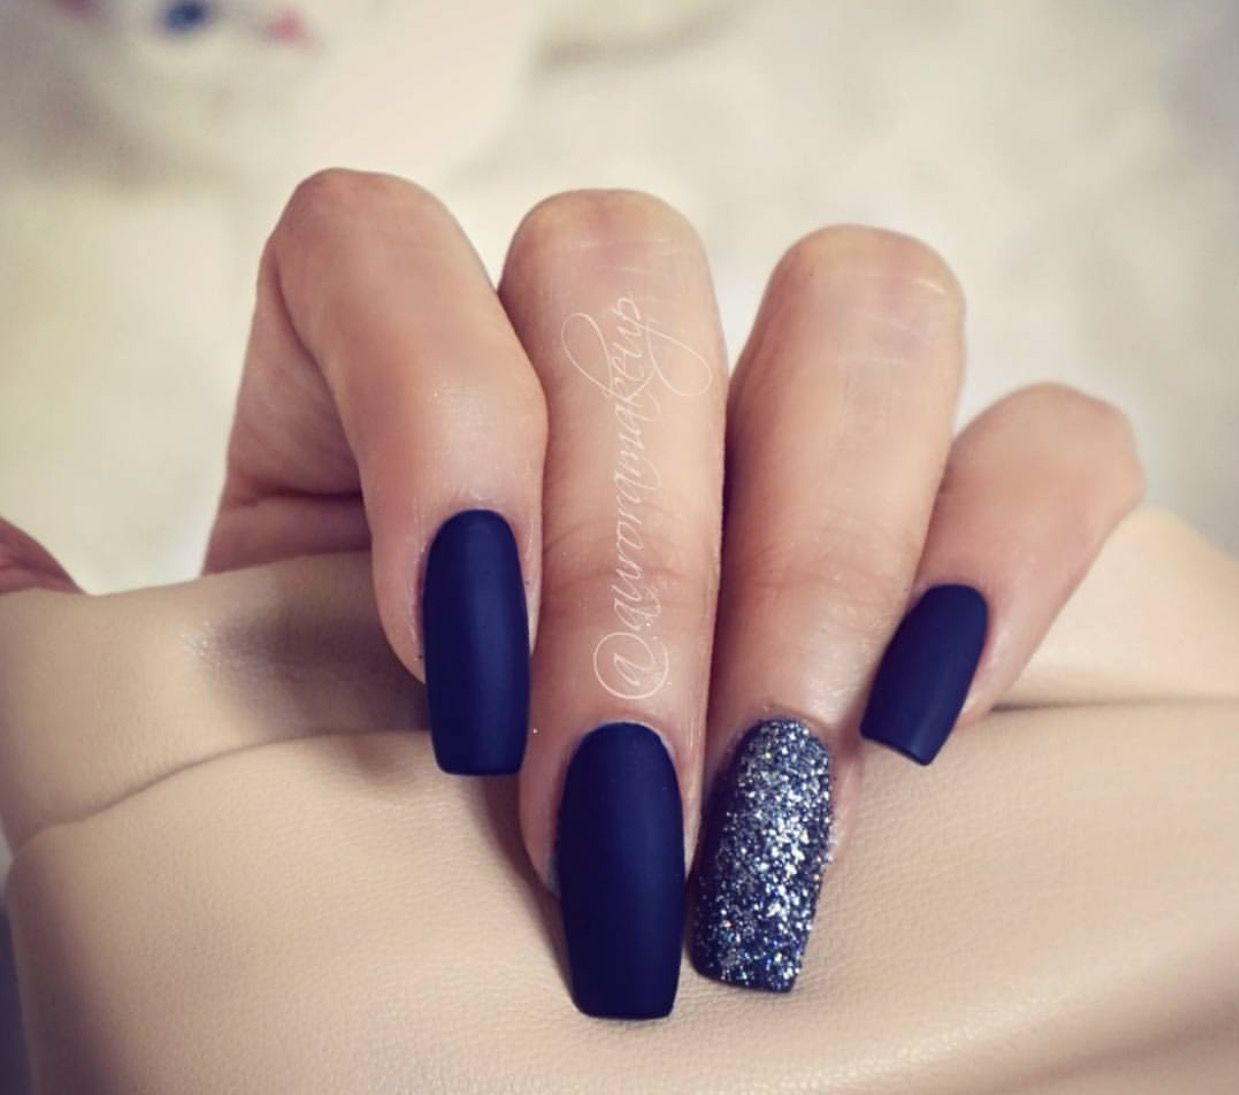 Pin by armanda on uñas | Pinterest | Manicure, Make up and Blue nails